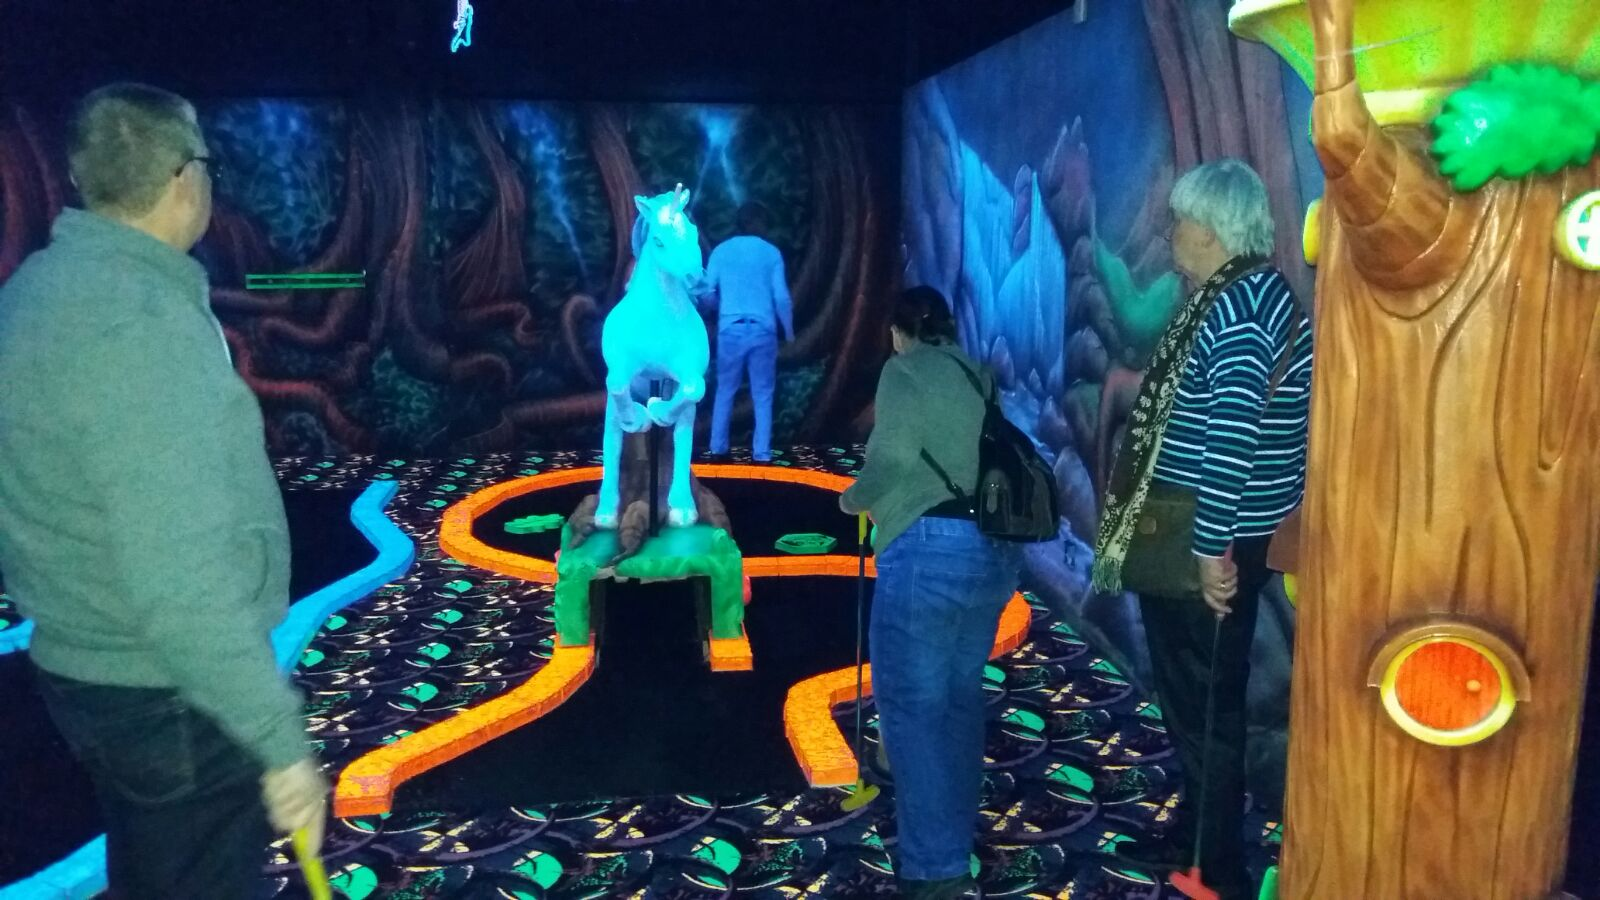 images/2018/Glowgolf/Glowgolf6.JPG